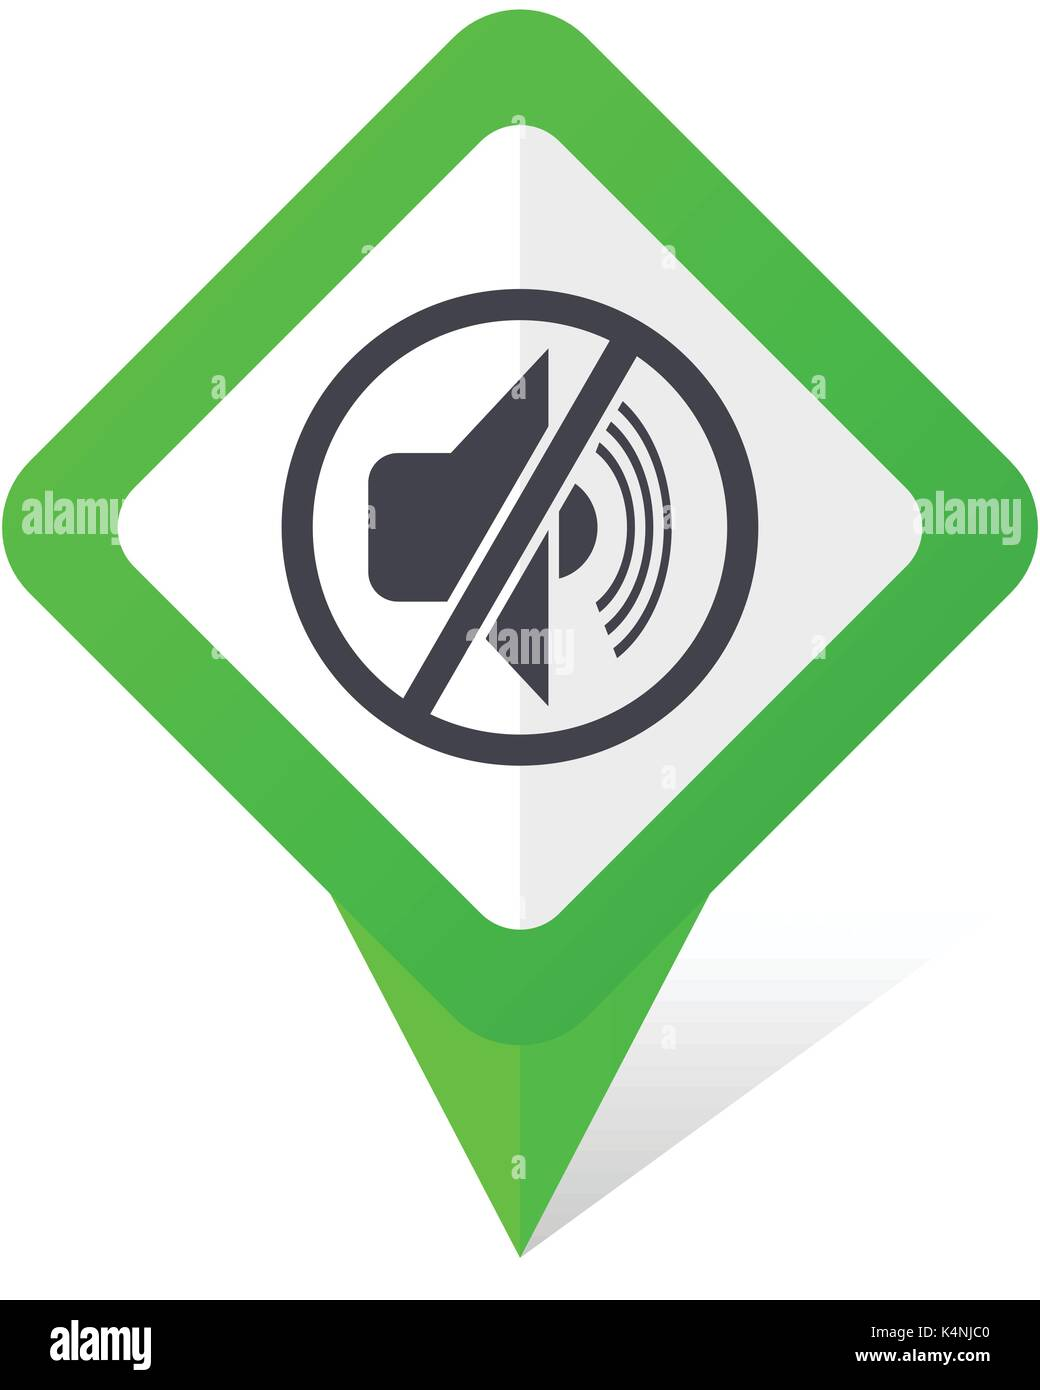 Mute green square pointer vector icon in eps 10 on white background with shadow. - Stock Image